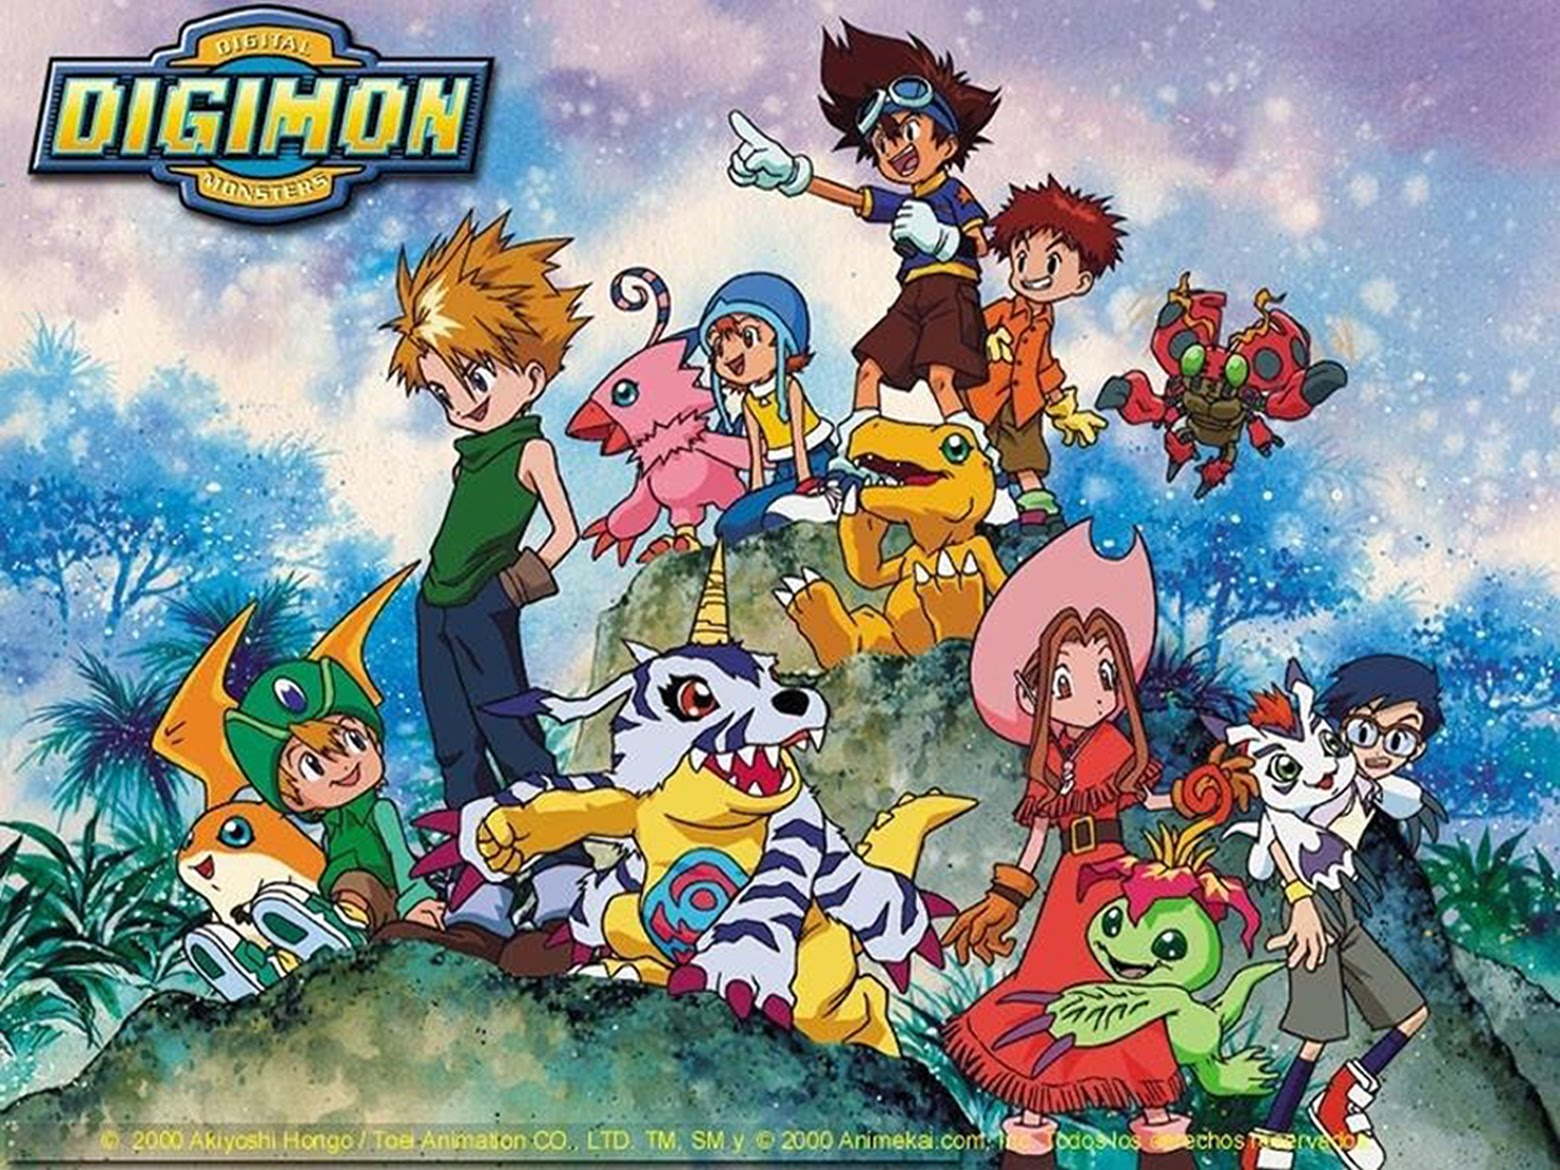 Animes Clássicos: Digimon